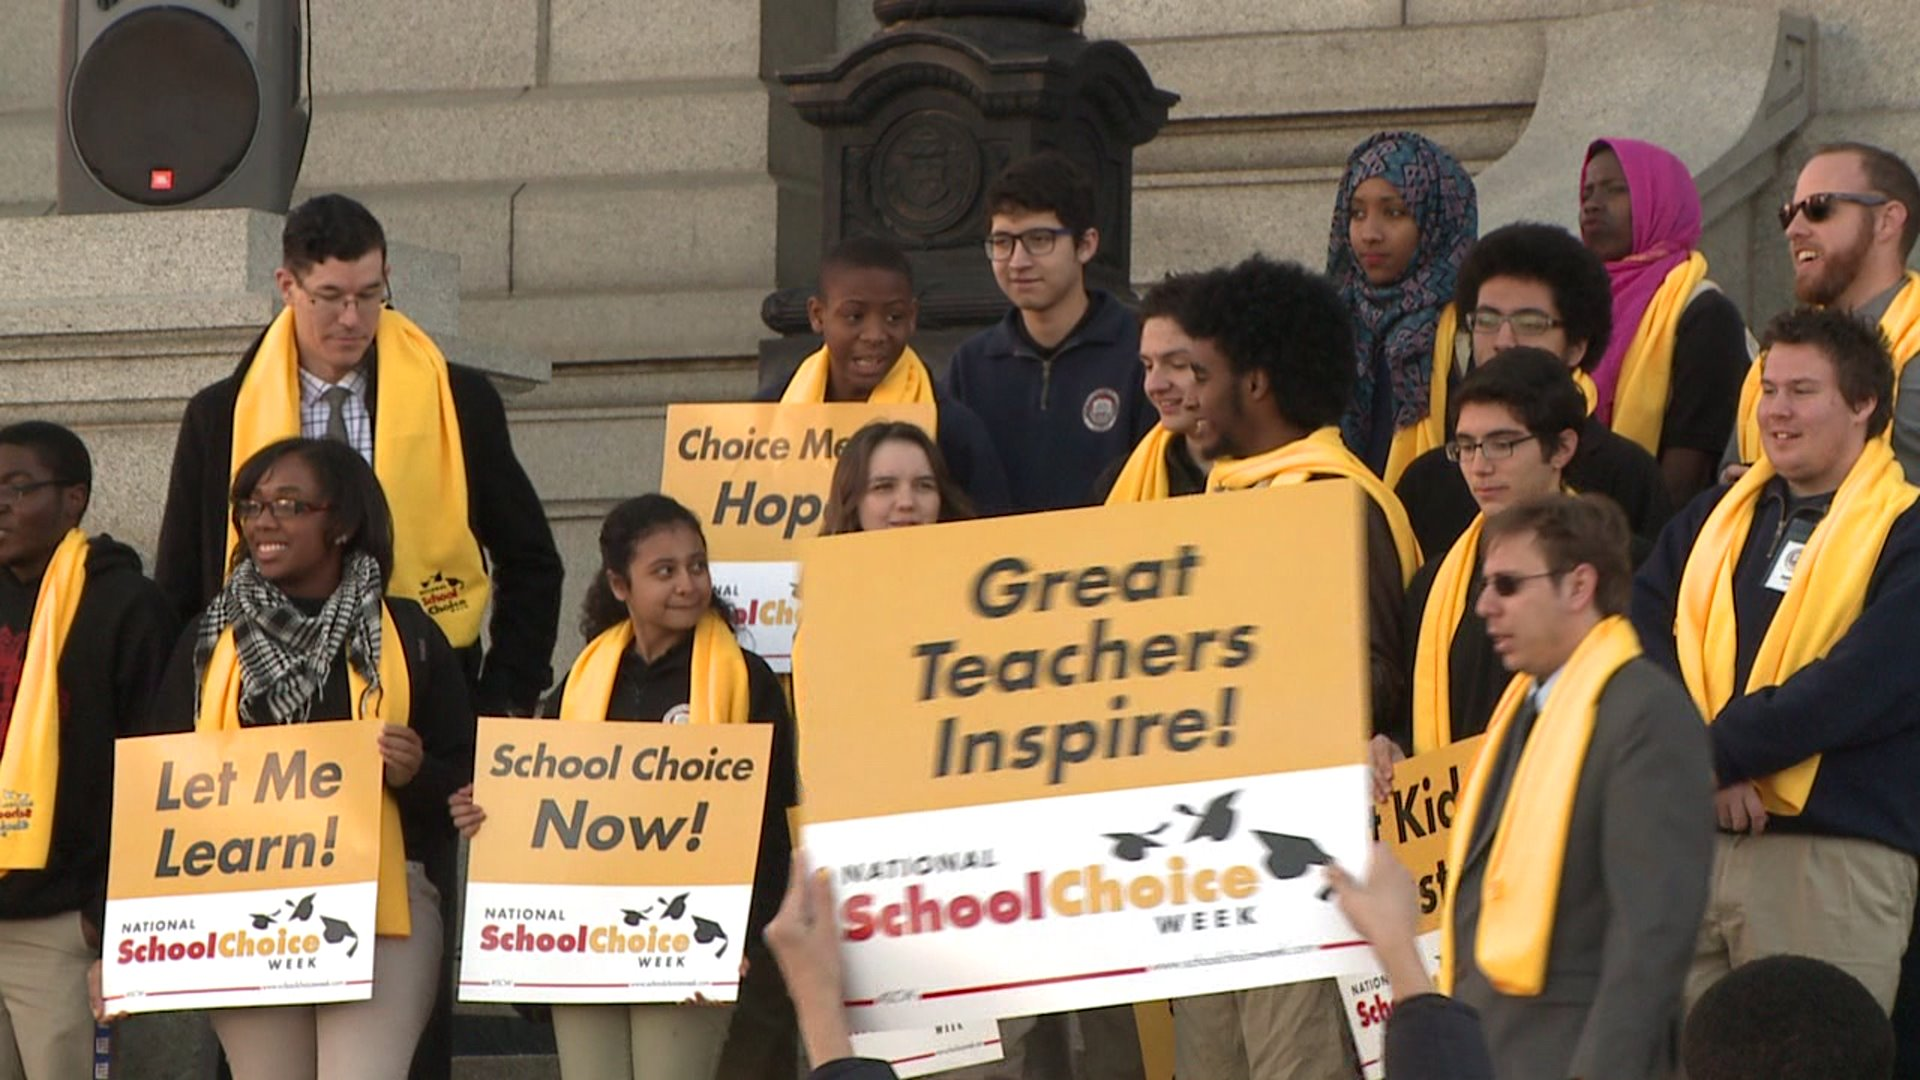 School choice event at the Capitol in Denver